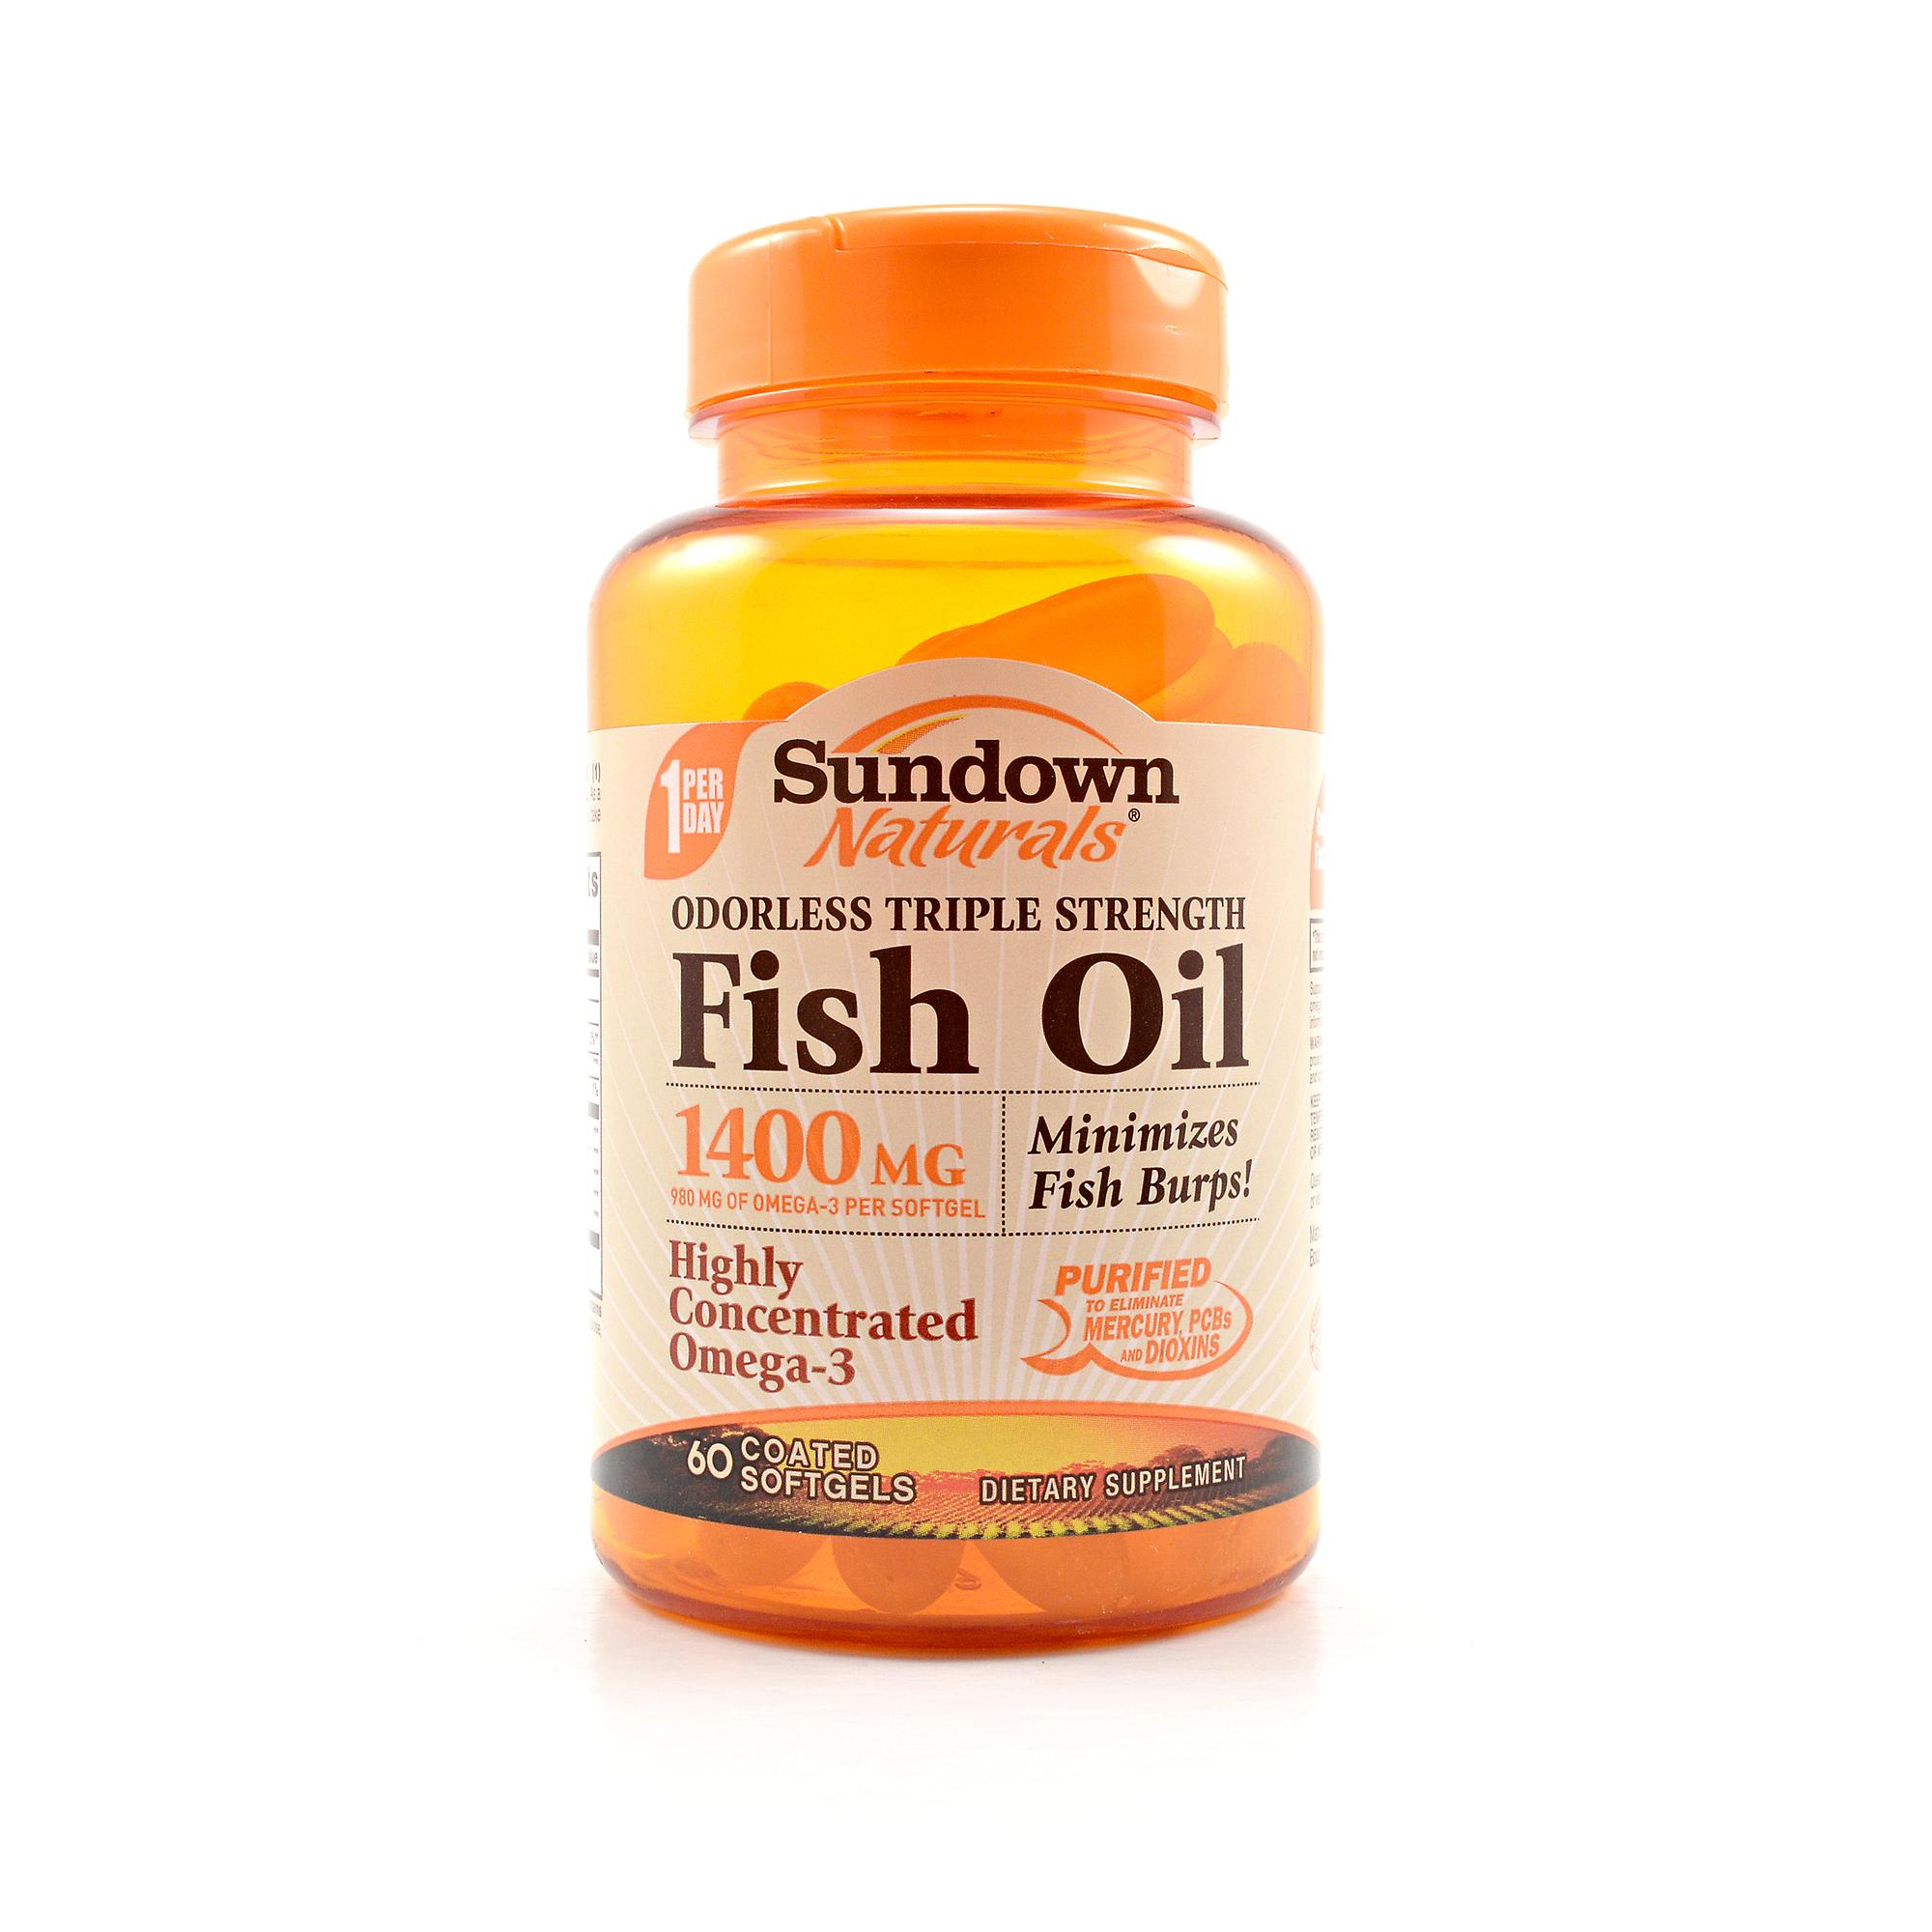 Sundown triple strength odorless fish oil review labdoor for Odorless fish oil